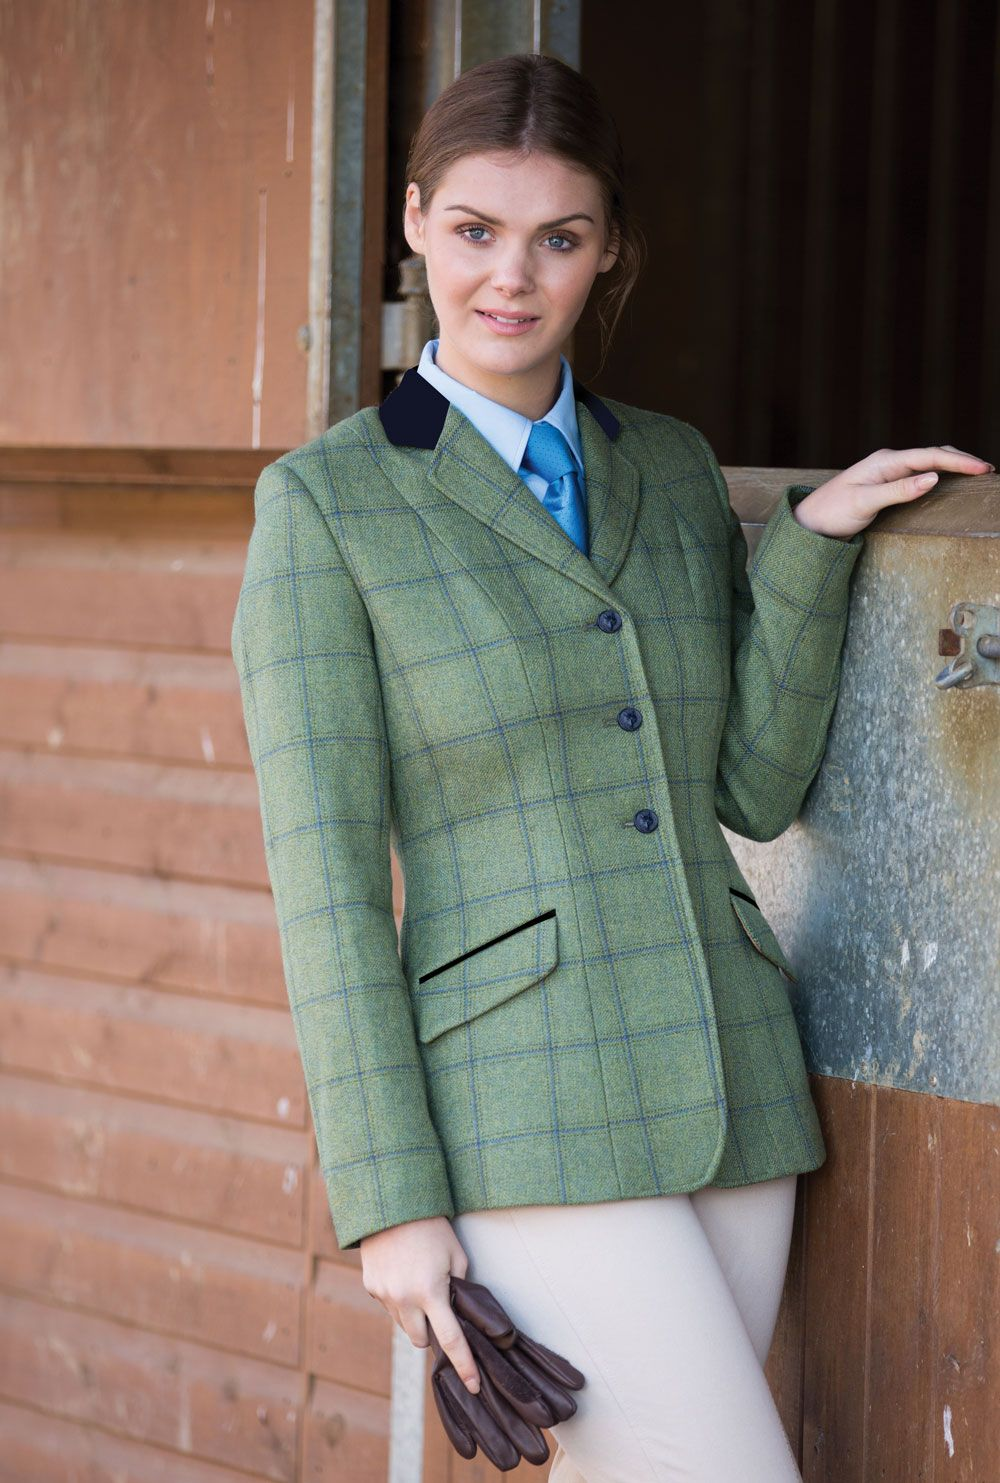 ca6a6a2d11cb9 EQUETECH LADIES CALVERT DELUXE TWEED RIDING JACKET | Women wearing ...